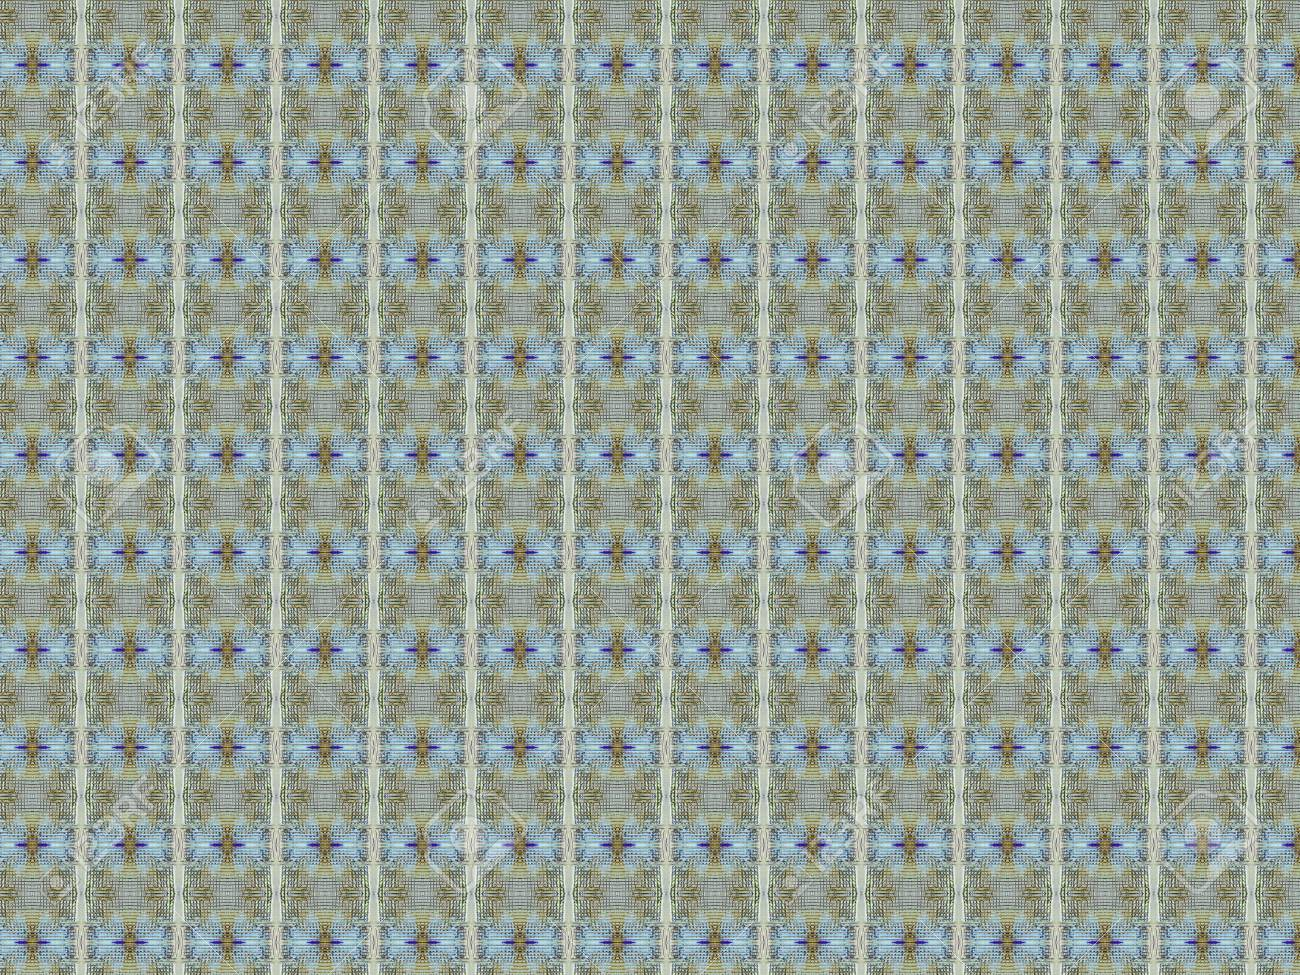 Vintage shabby background with classy patterns  Geometric or floral pattern on paper texture in grunge style Stock Photo - 17204839